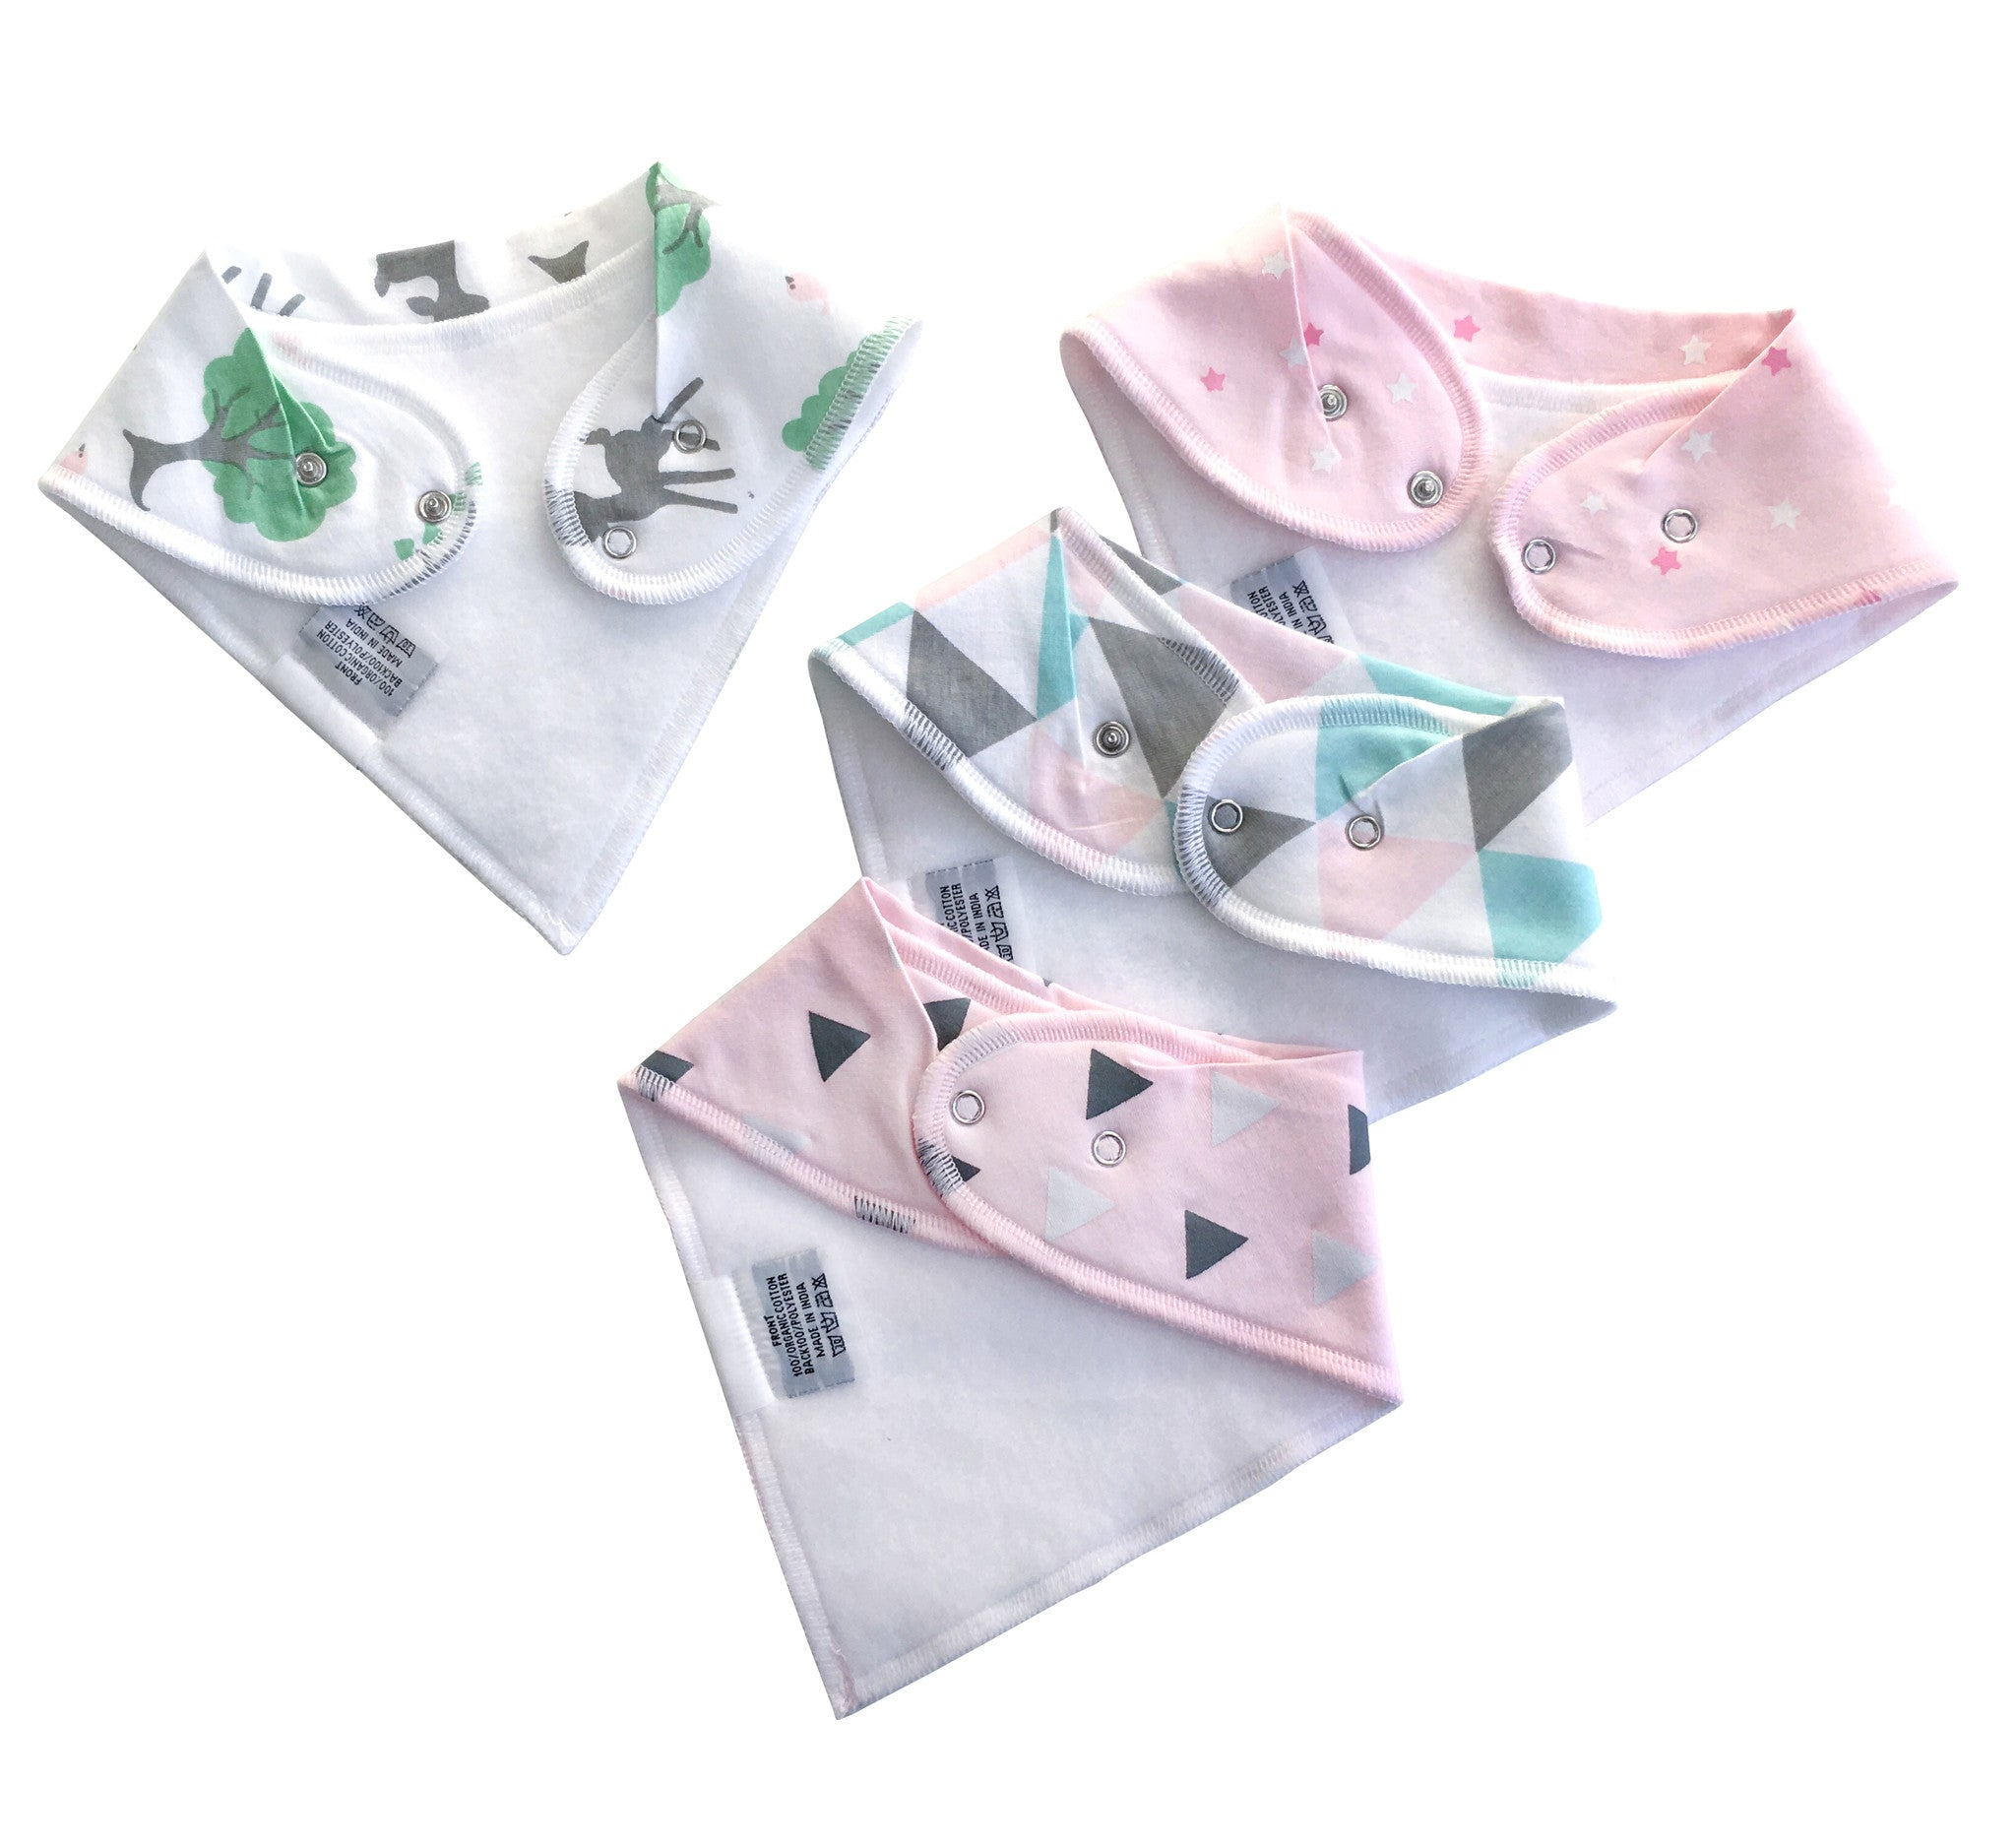 Baby Organic Bandana Drool Bibs (4 Pack)             Enchanted Forest Set - Little Kims